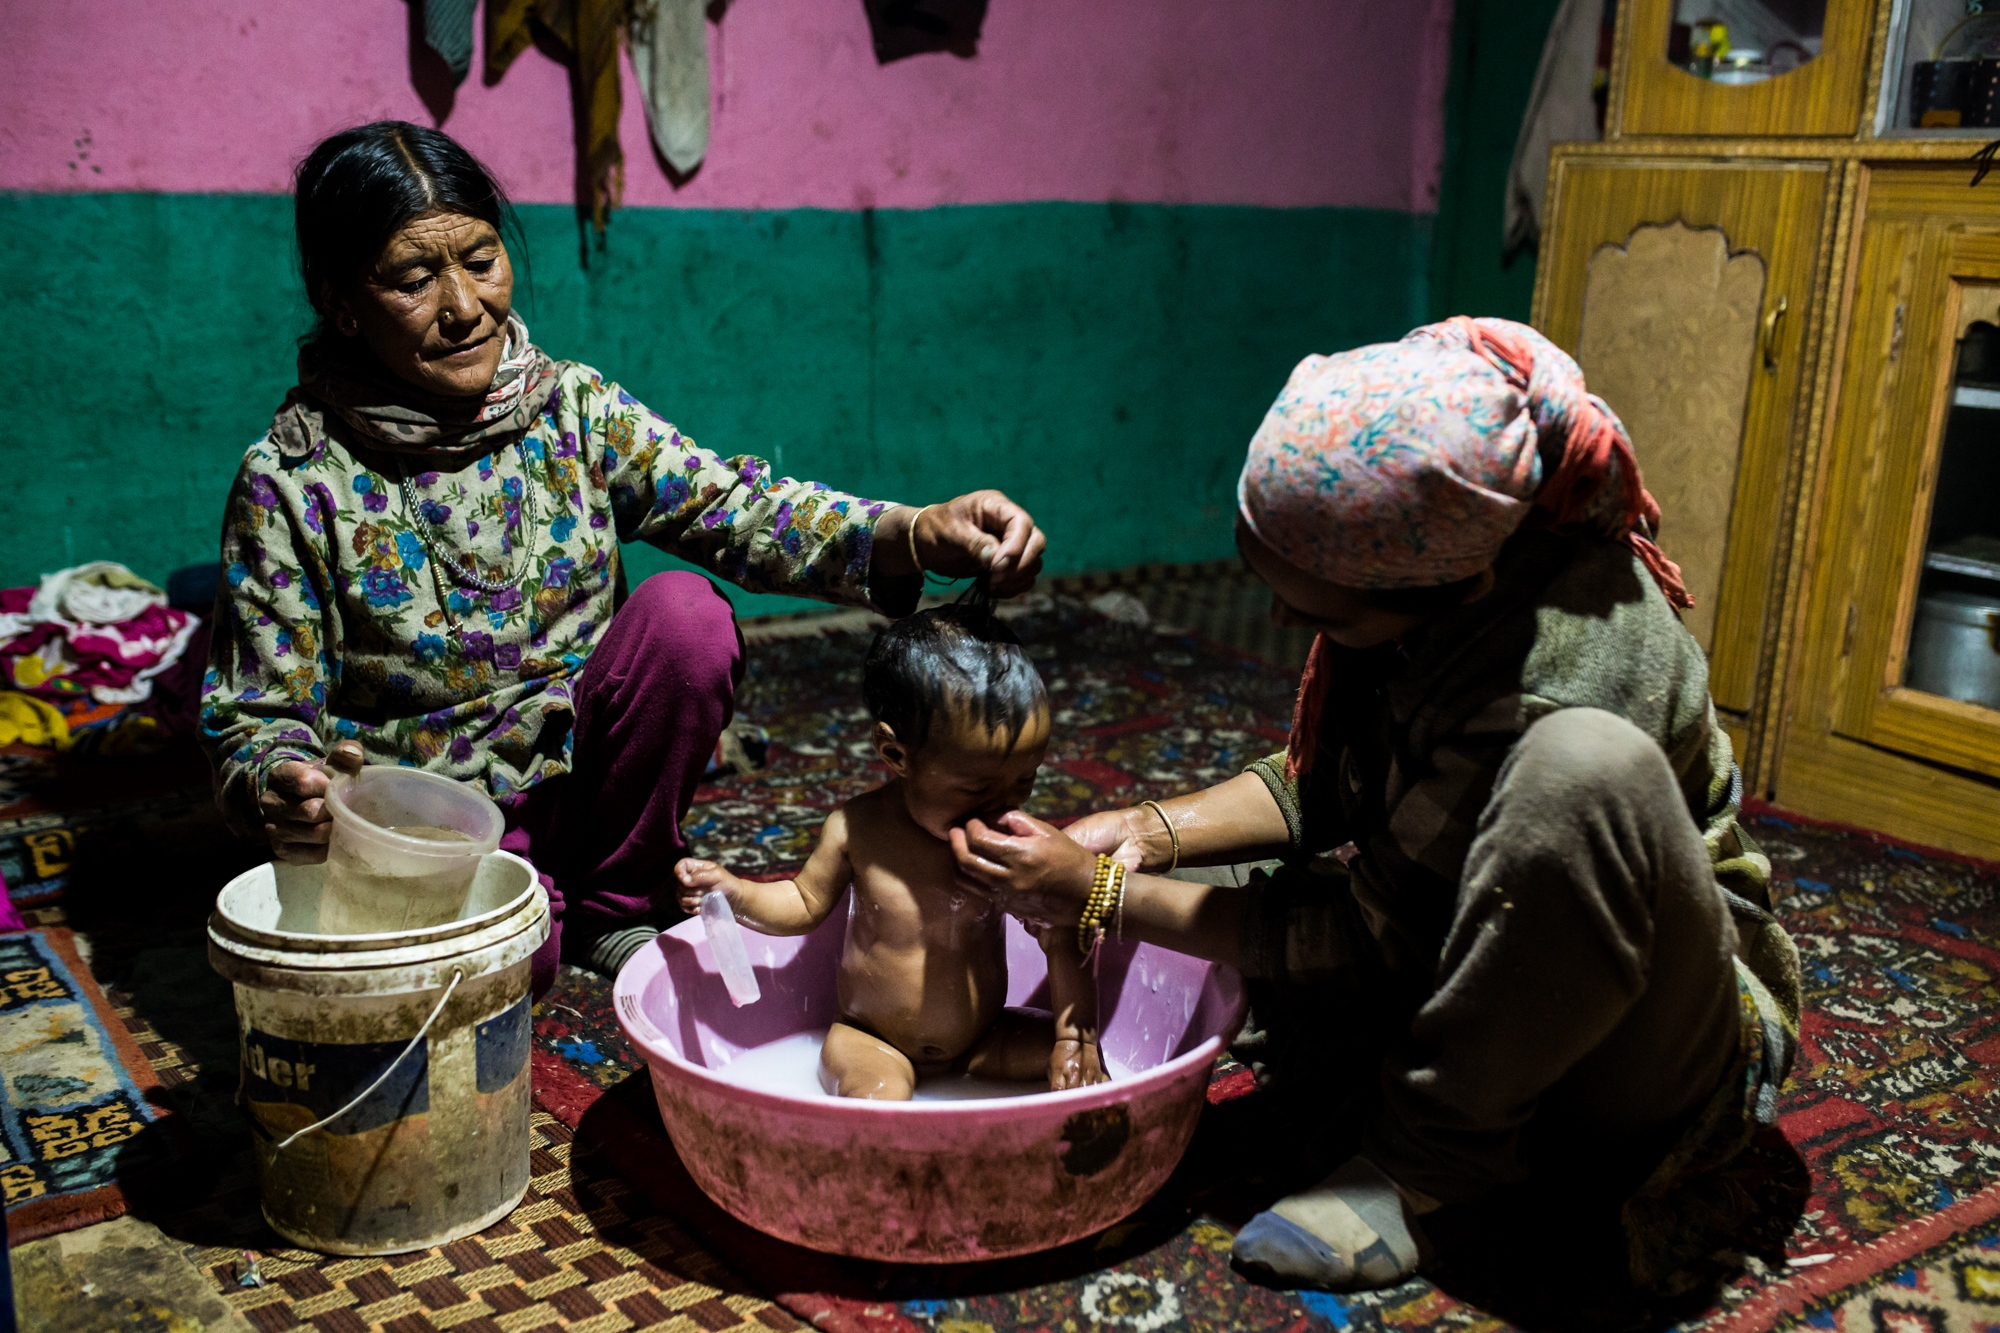 A newly born baby being bathed by grandmother and mother in the water-stressed Himalayan village of Kibber, India.